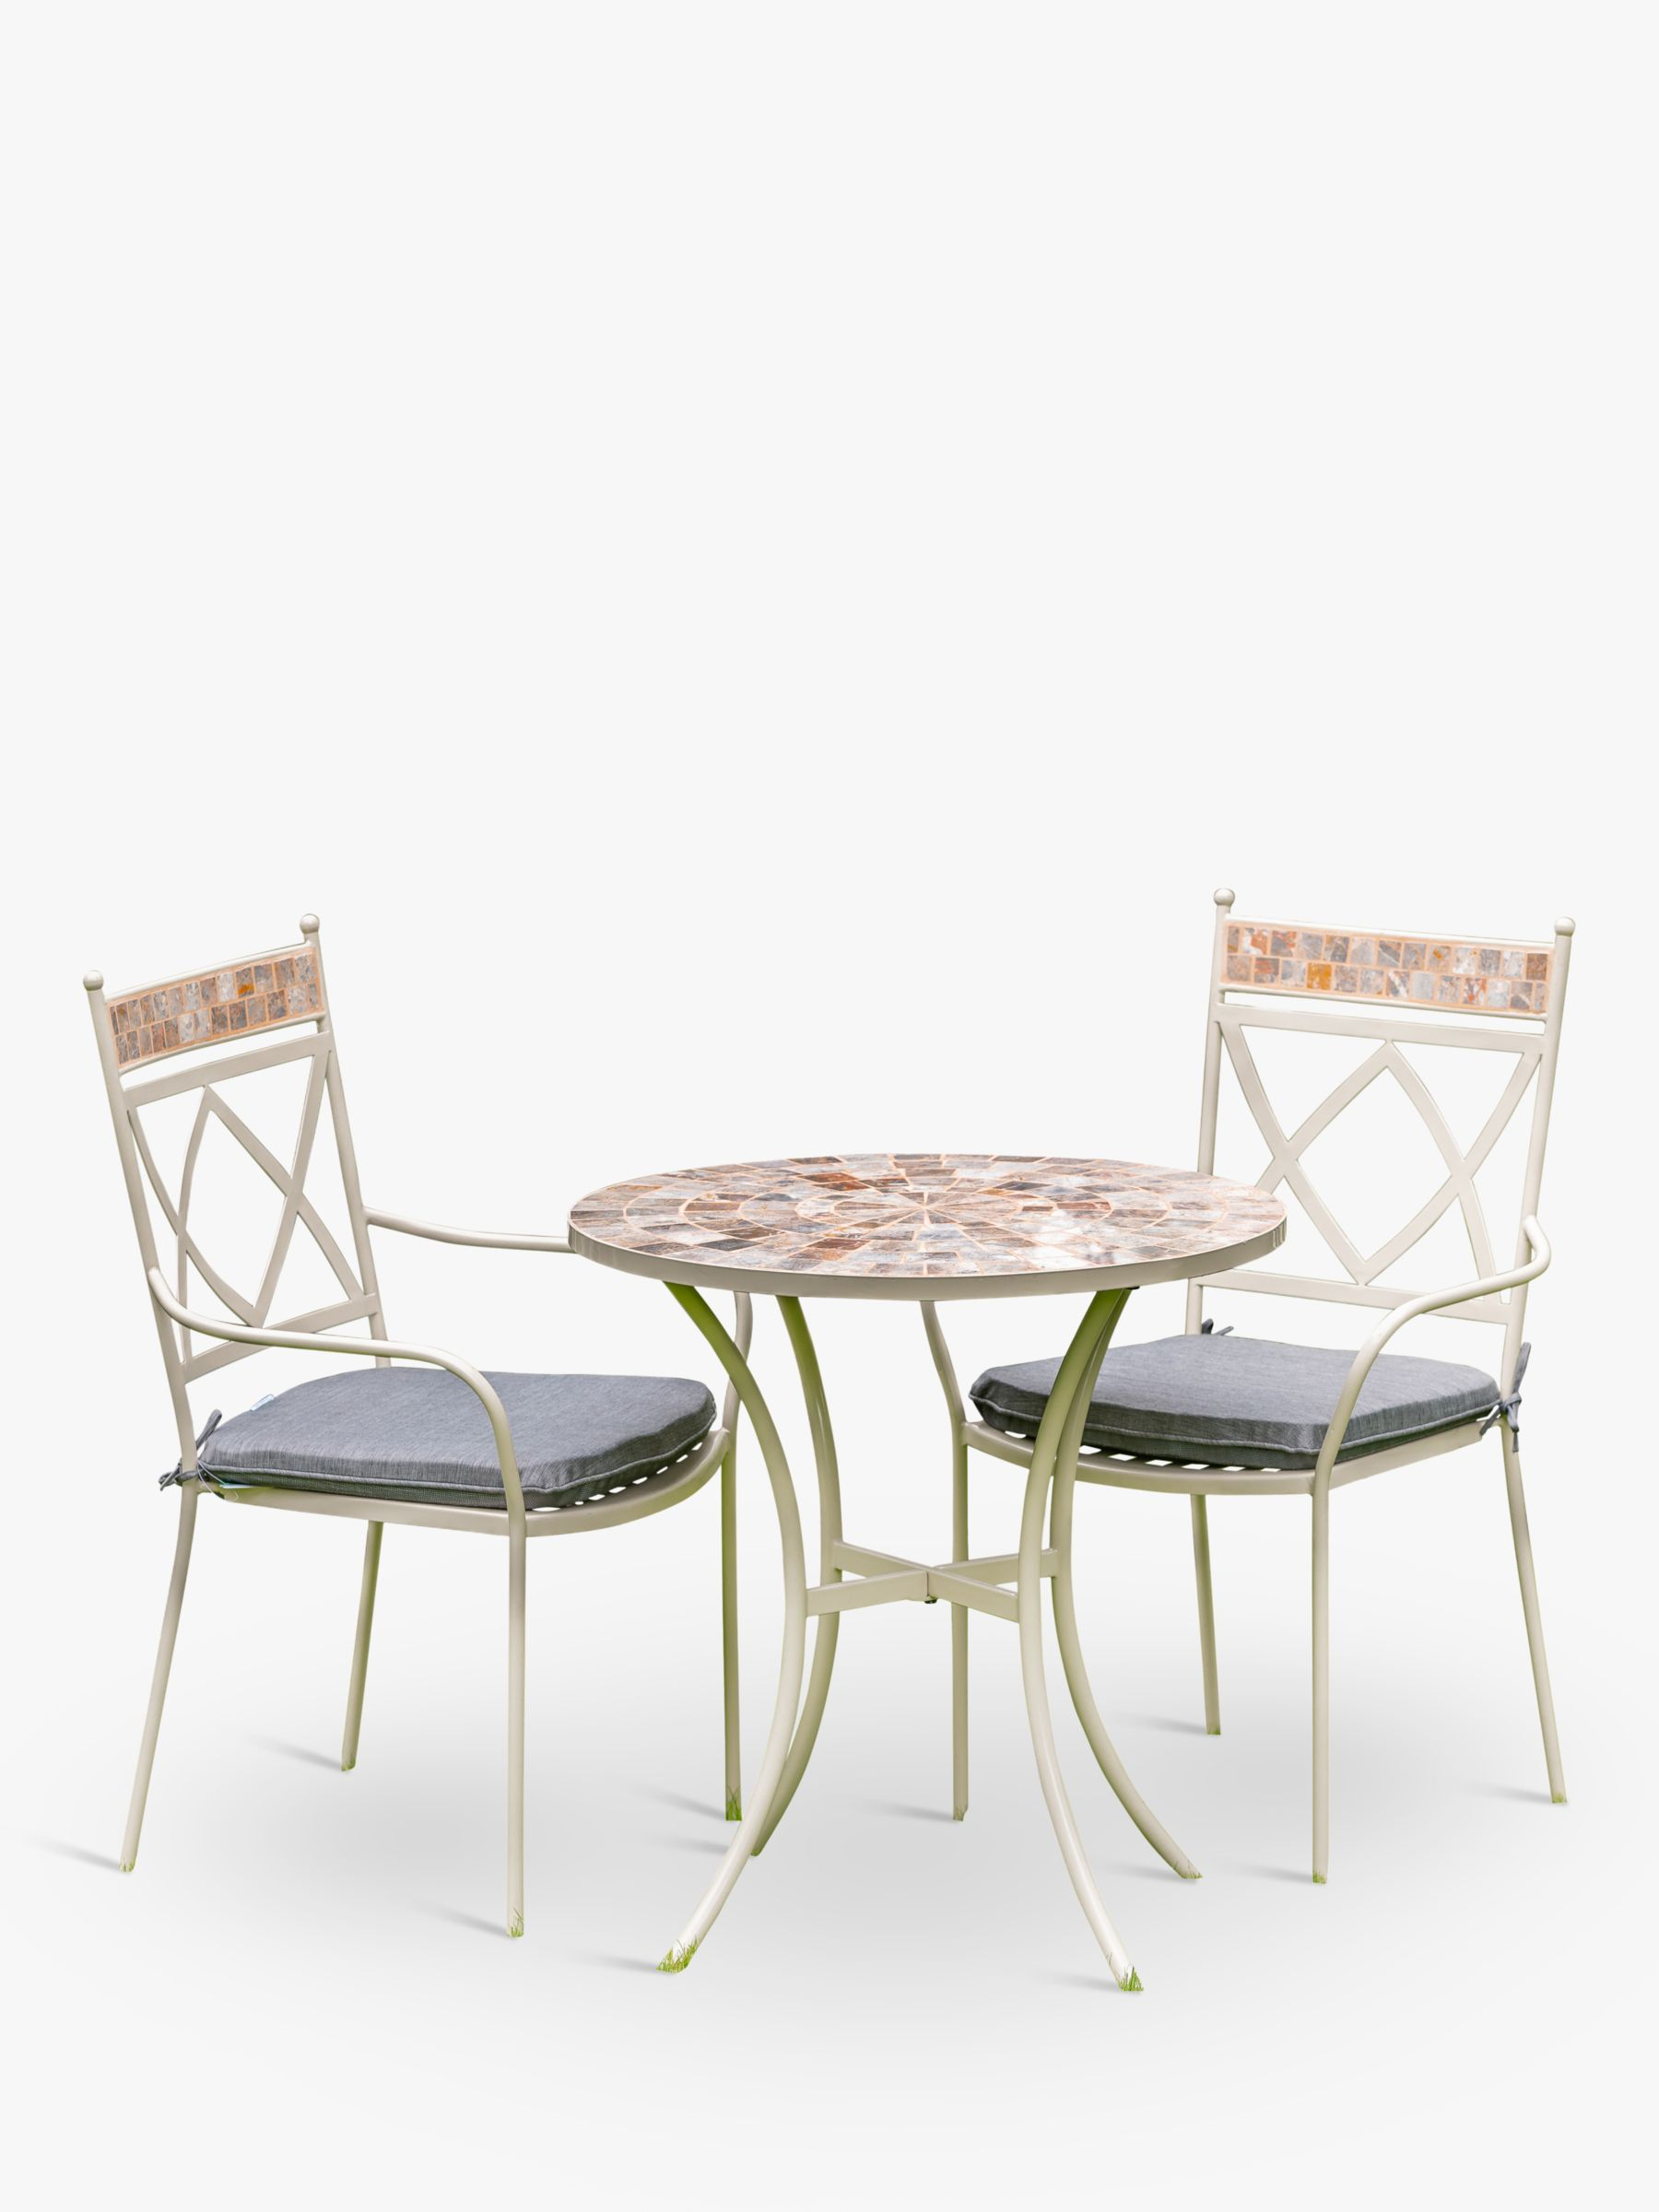 LG Outdoor LG Outdoor Morocco Garden Bistro Table & Chairs Set